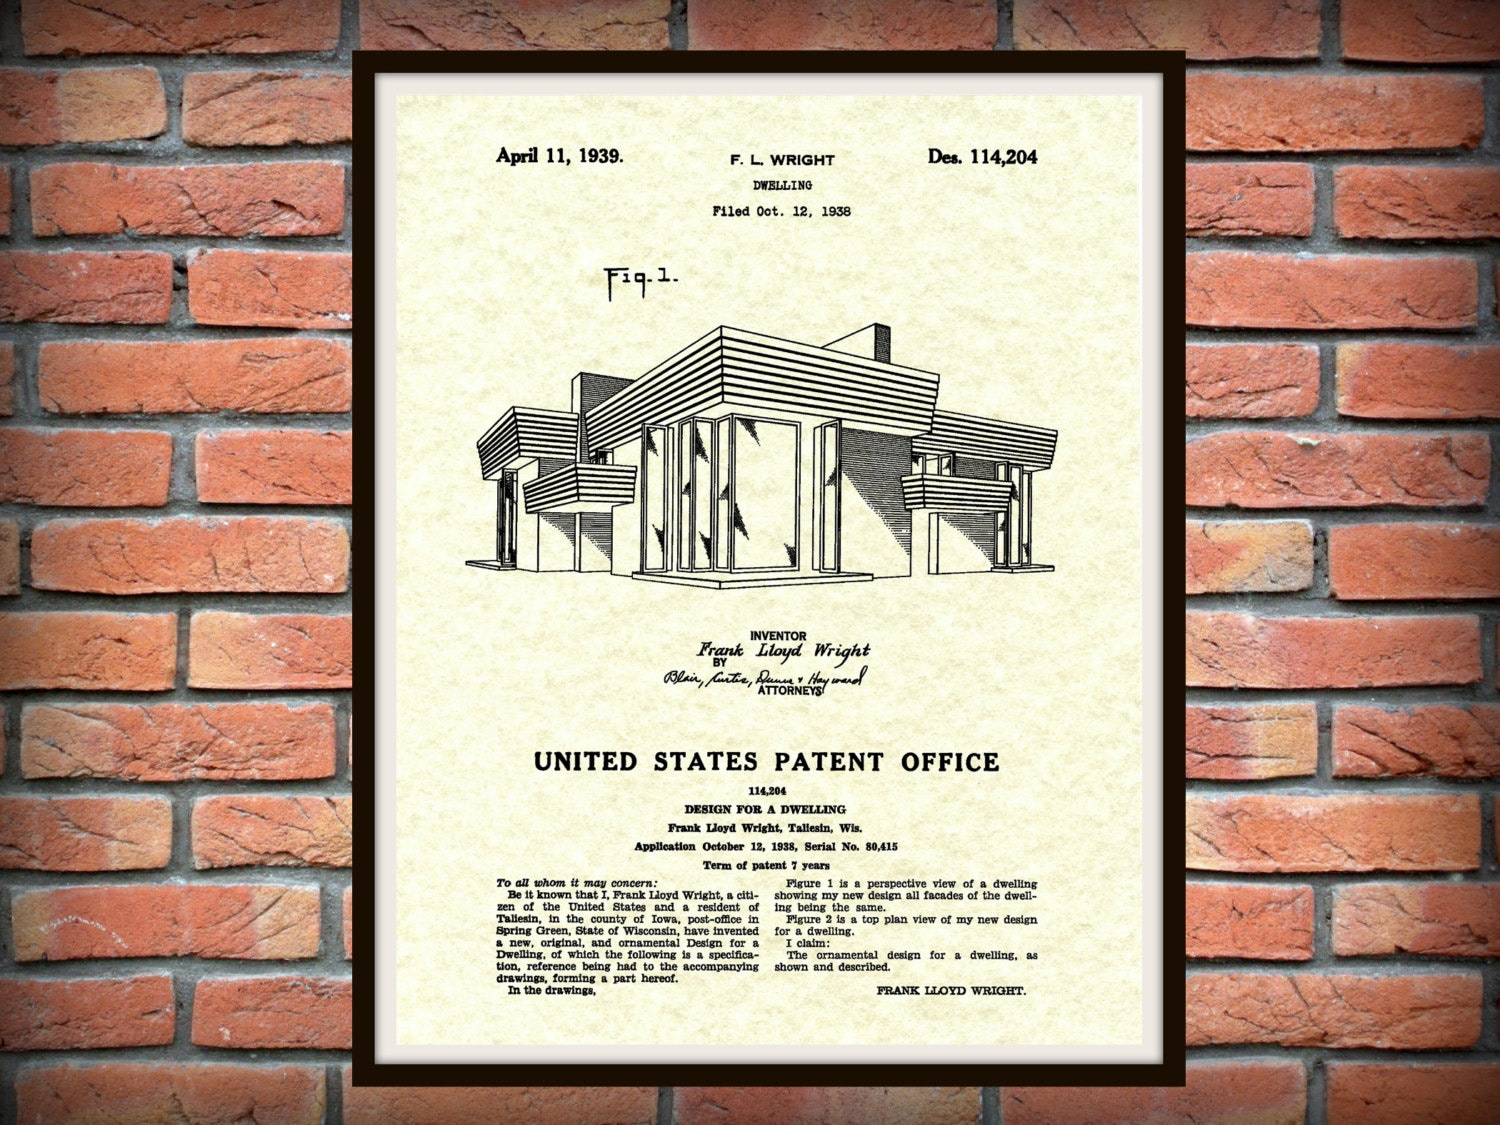 Patent 1939 Frank Lloyd Wright House Architecture - Dwelling Art Print - Poster Print - Wall Art - Engineering Design  sc 1 st  Blue Moon Patent Prints u0026 Drawings & Patent 1939 Frank Lloyd Wright House Architecture - Dwelling Art ...